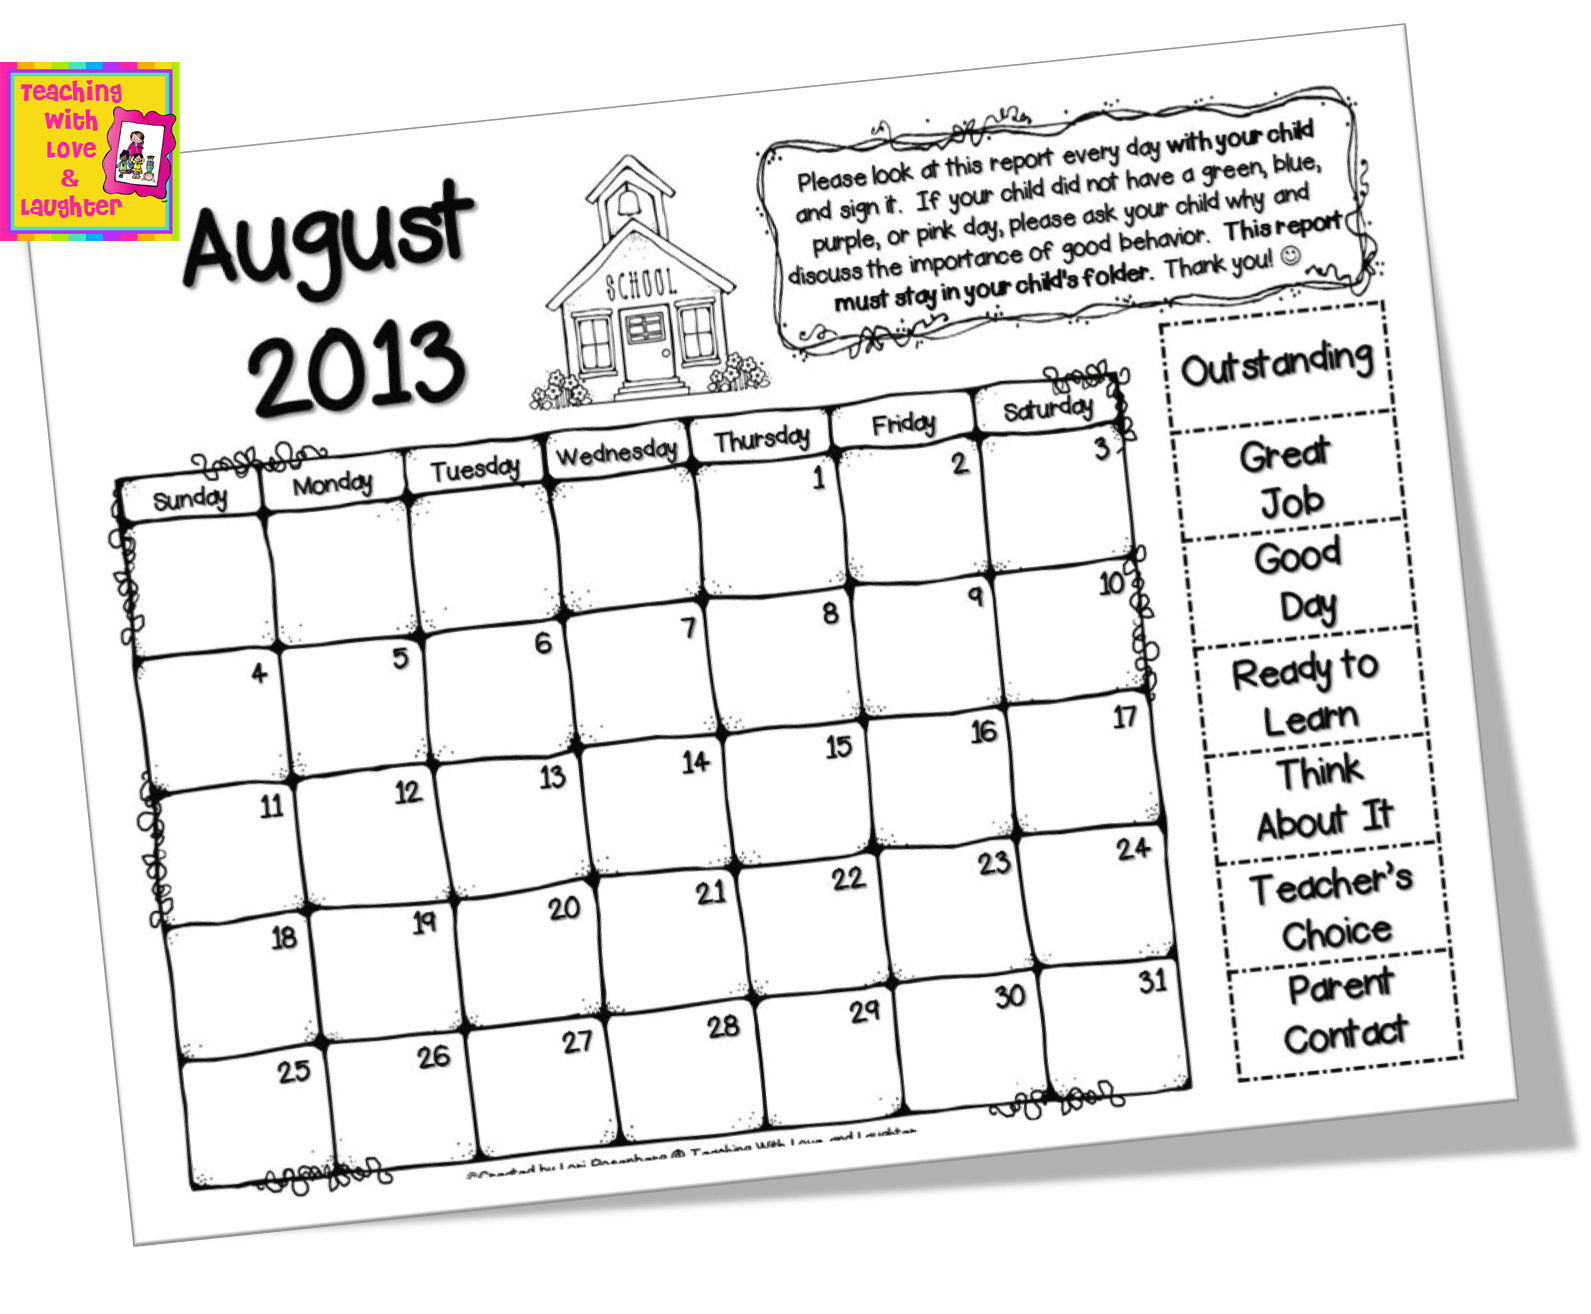 Teaching With Love And Laughter Clip Chart Calendars For